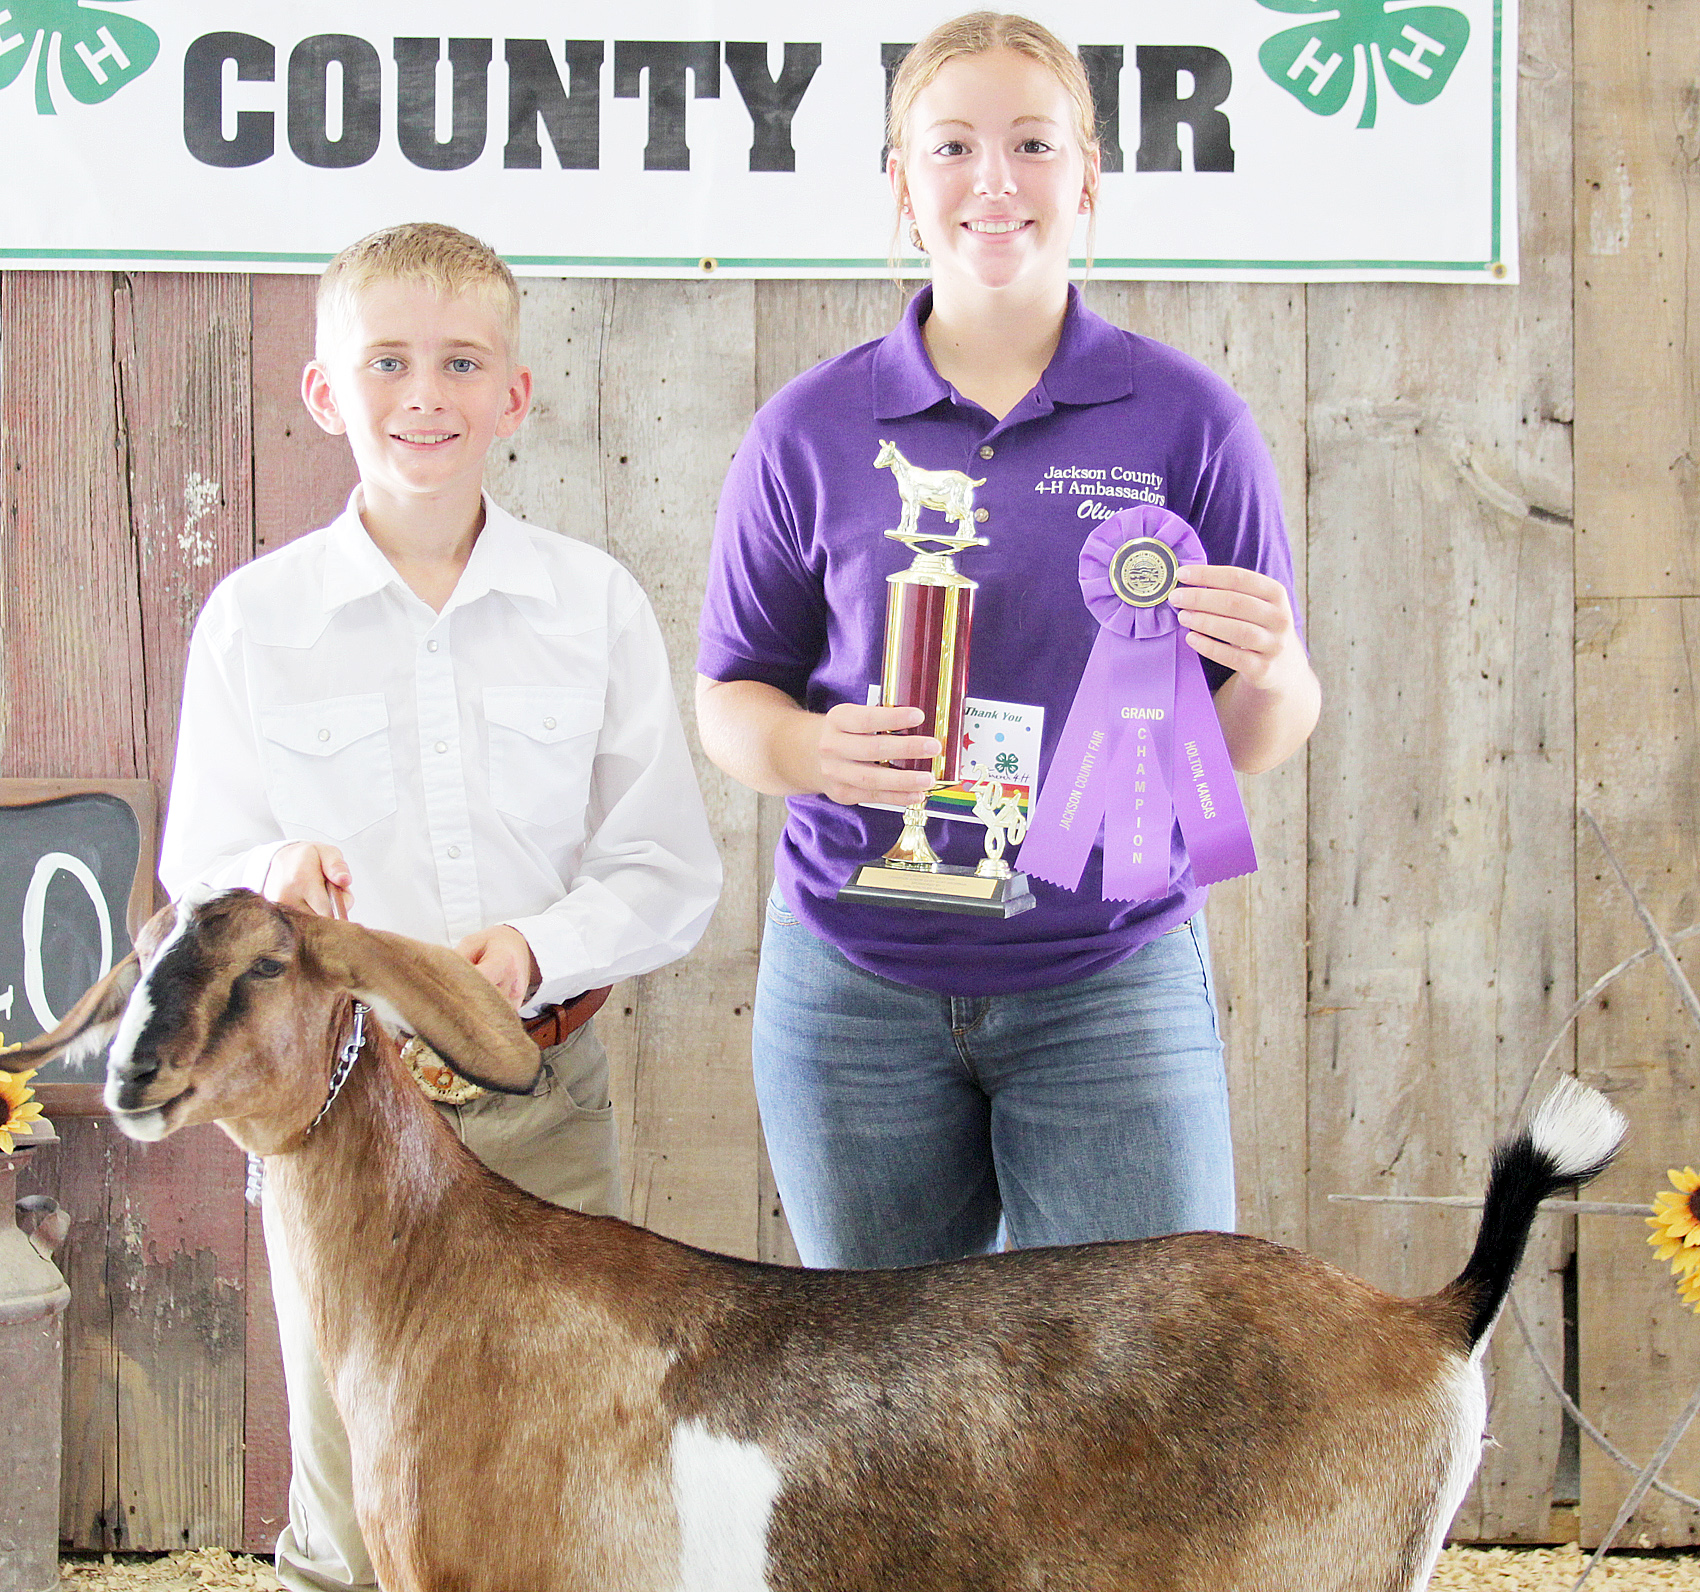 Tucker Terry of the Soldier Boosters 4-H Club was named champion junior dairy goat showman at the 2020 Jackson County Fair.